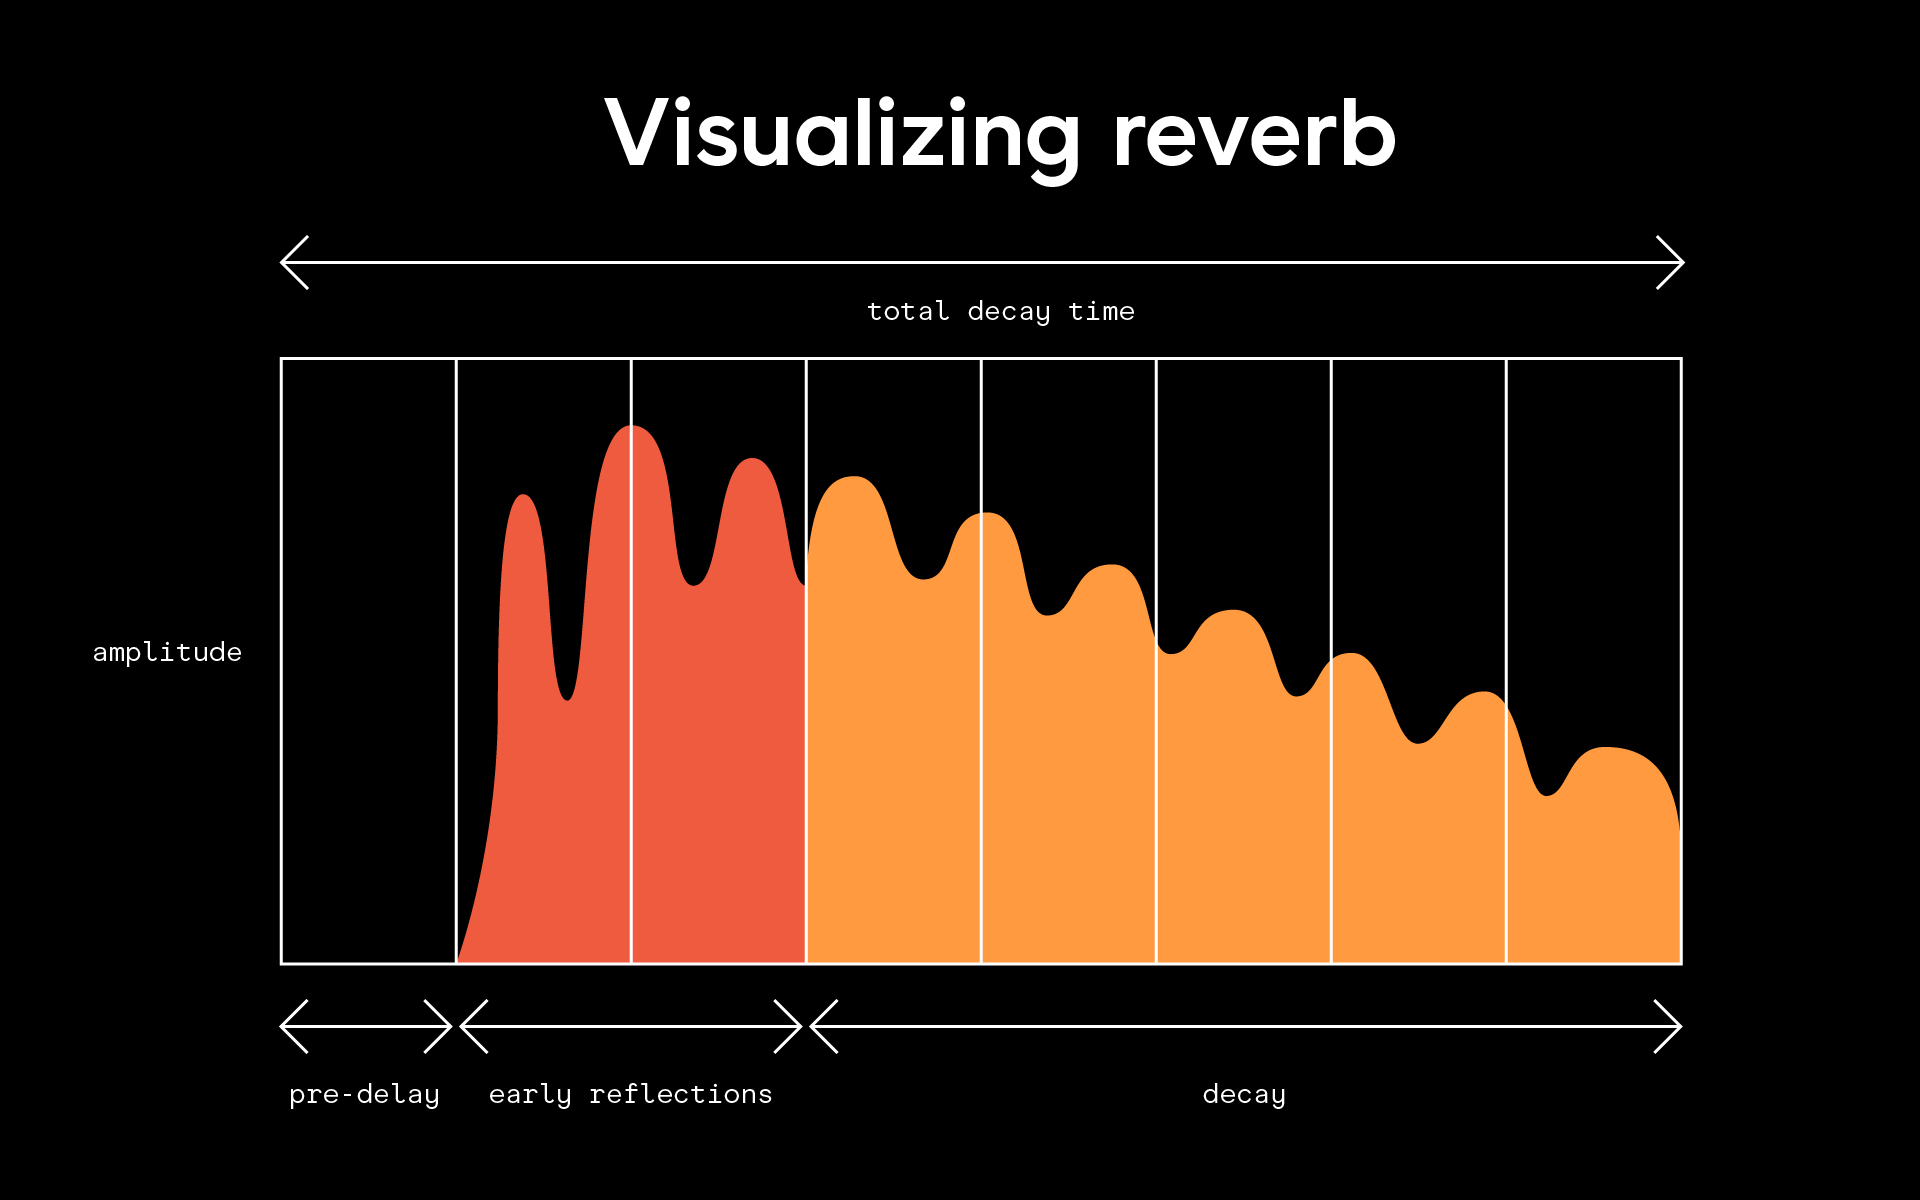 A graph that visualizes reverb, with the Y axis representing amplitude and the X axis representing decay. The graph shows that as decay occurs, the amplitude of reverb decreases.